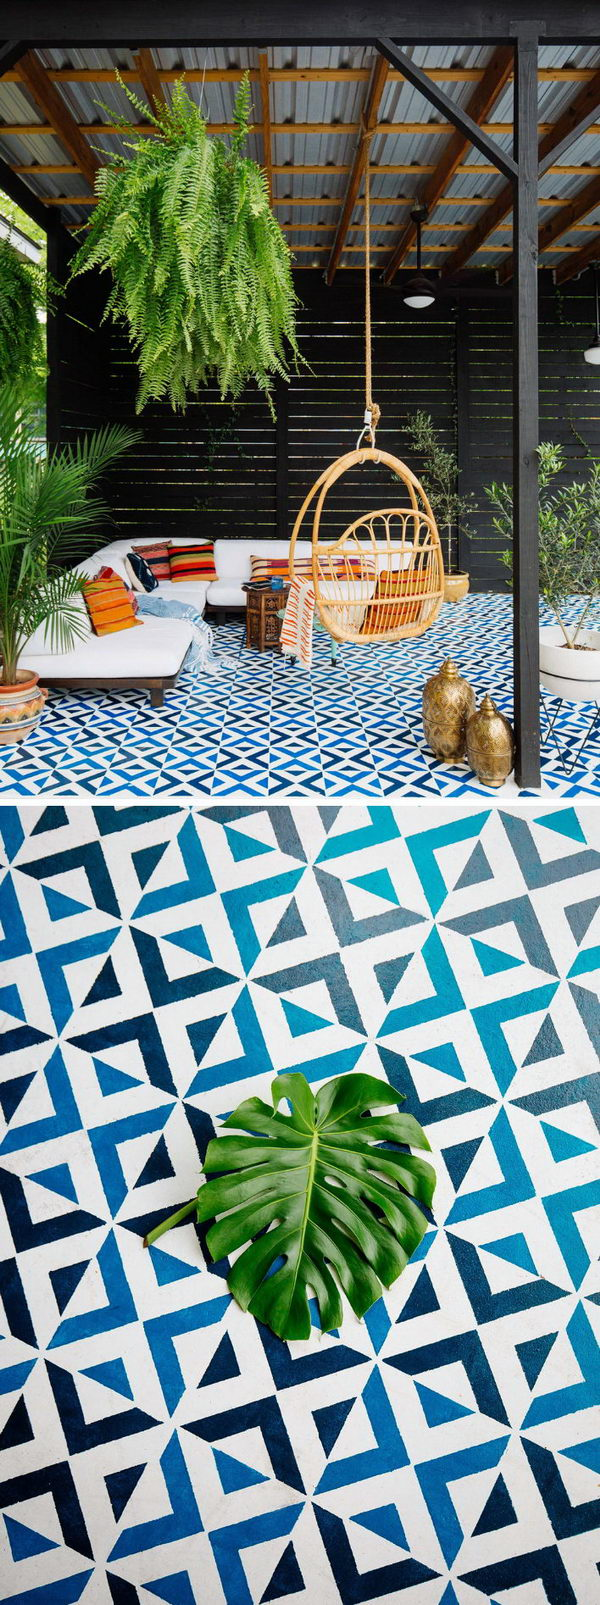 Painted Patio Floor Tiles.